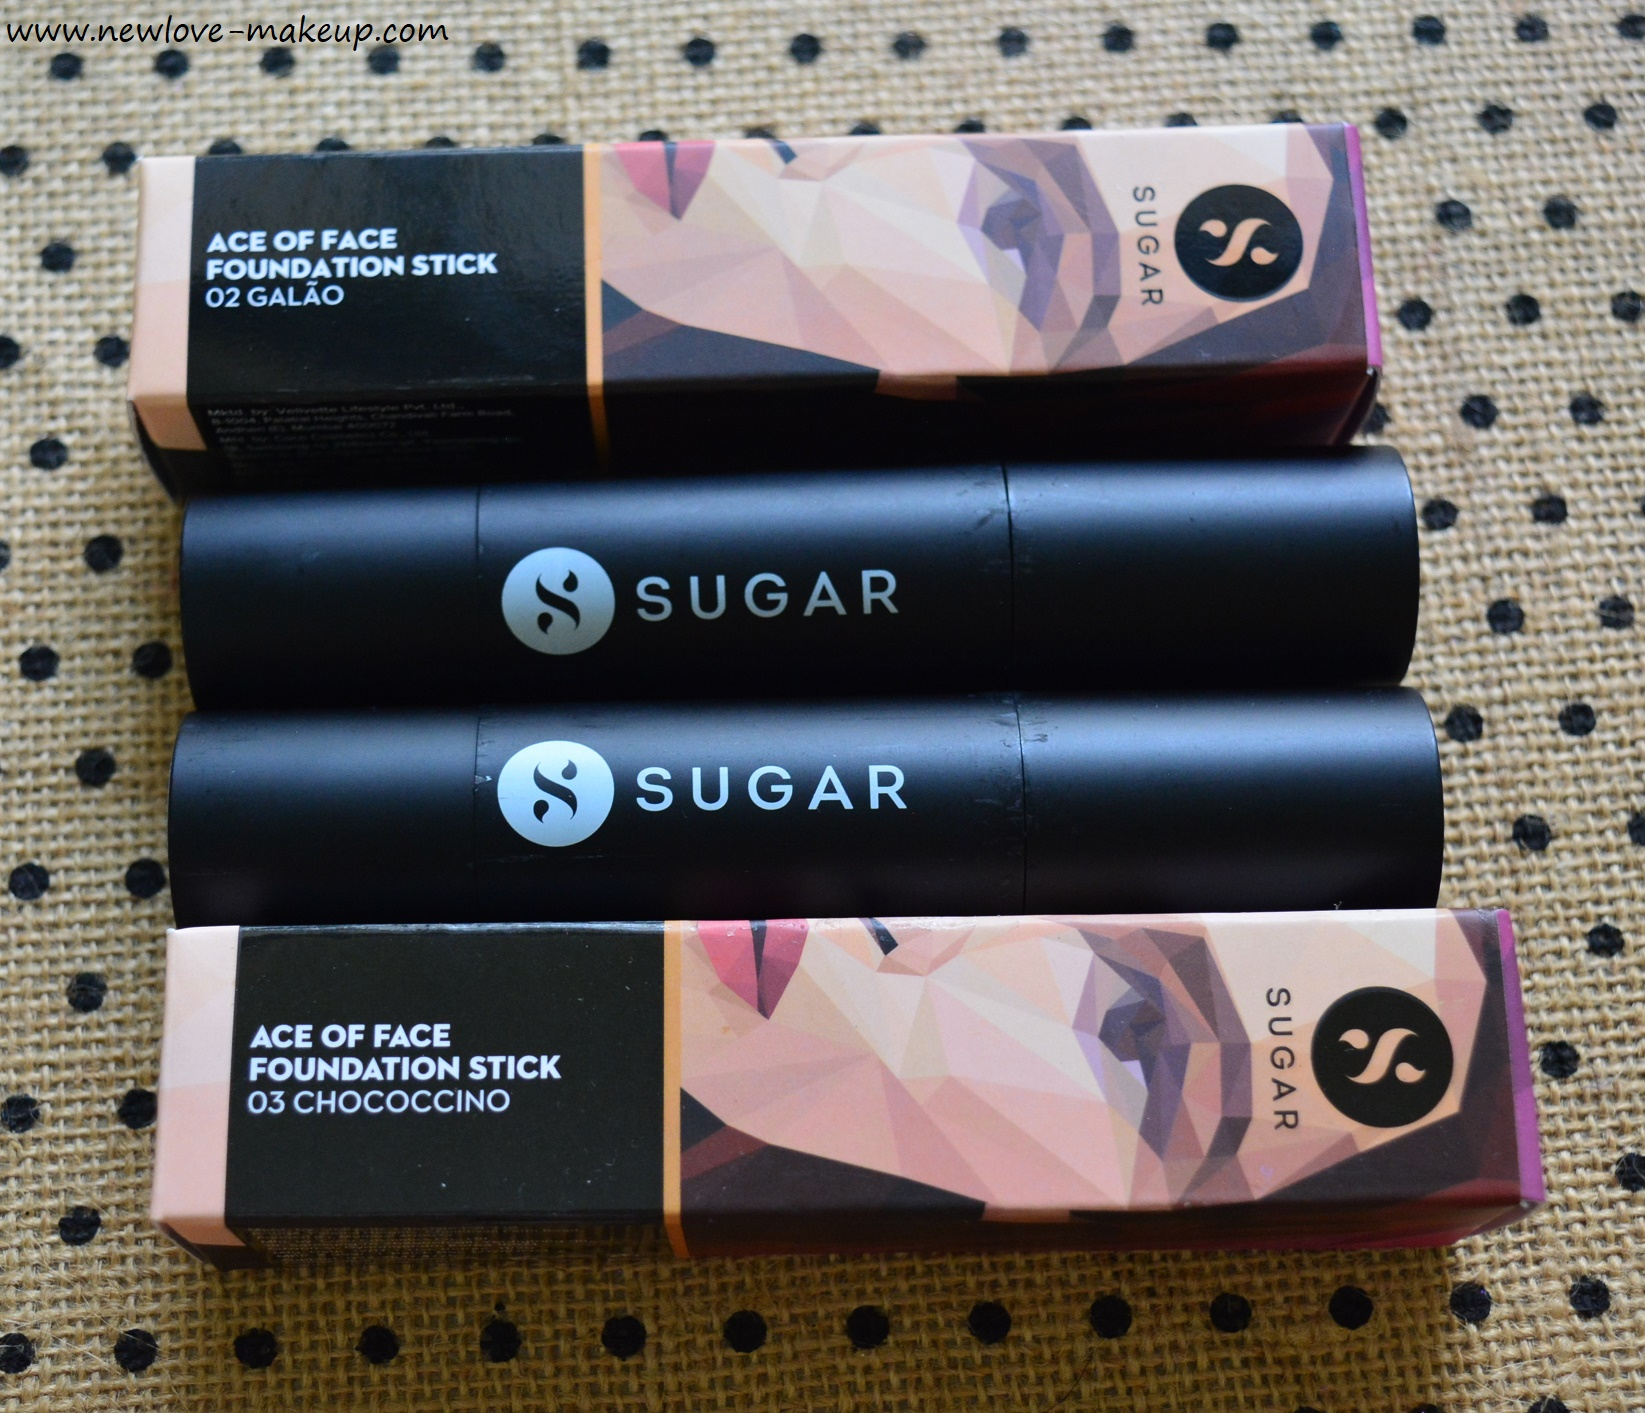 Sugar Ace of Face Foundation Sticks Review, Swatches, Demo, Wear Test